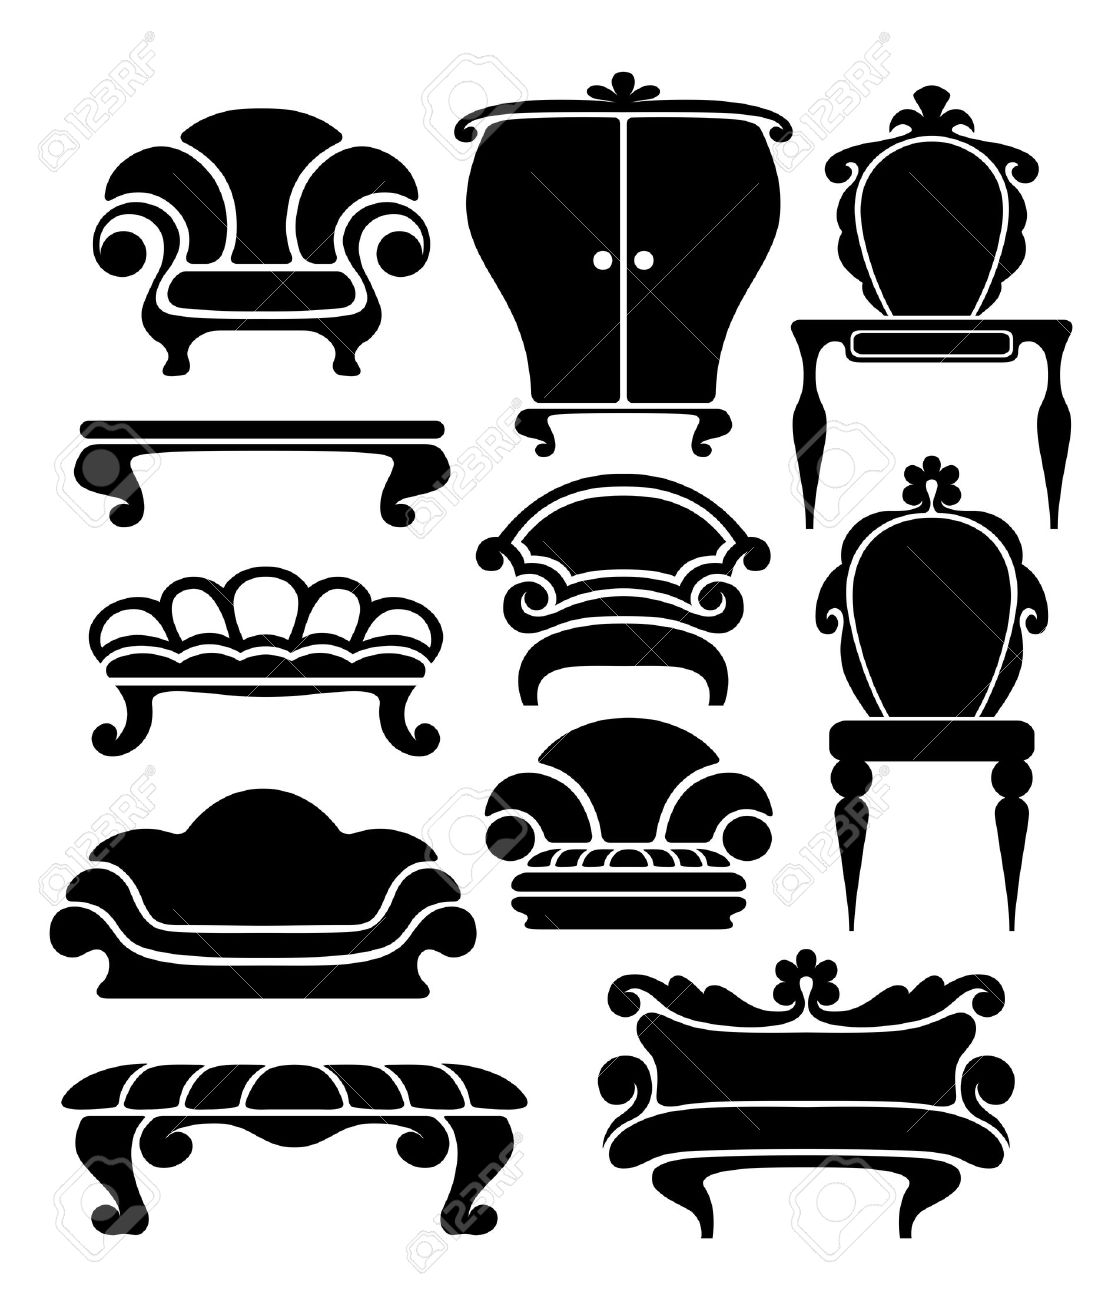 Antique chair silhouette - Antique Furniture Set Of Graphical Retro Furniture Items Illustration